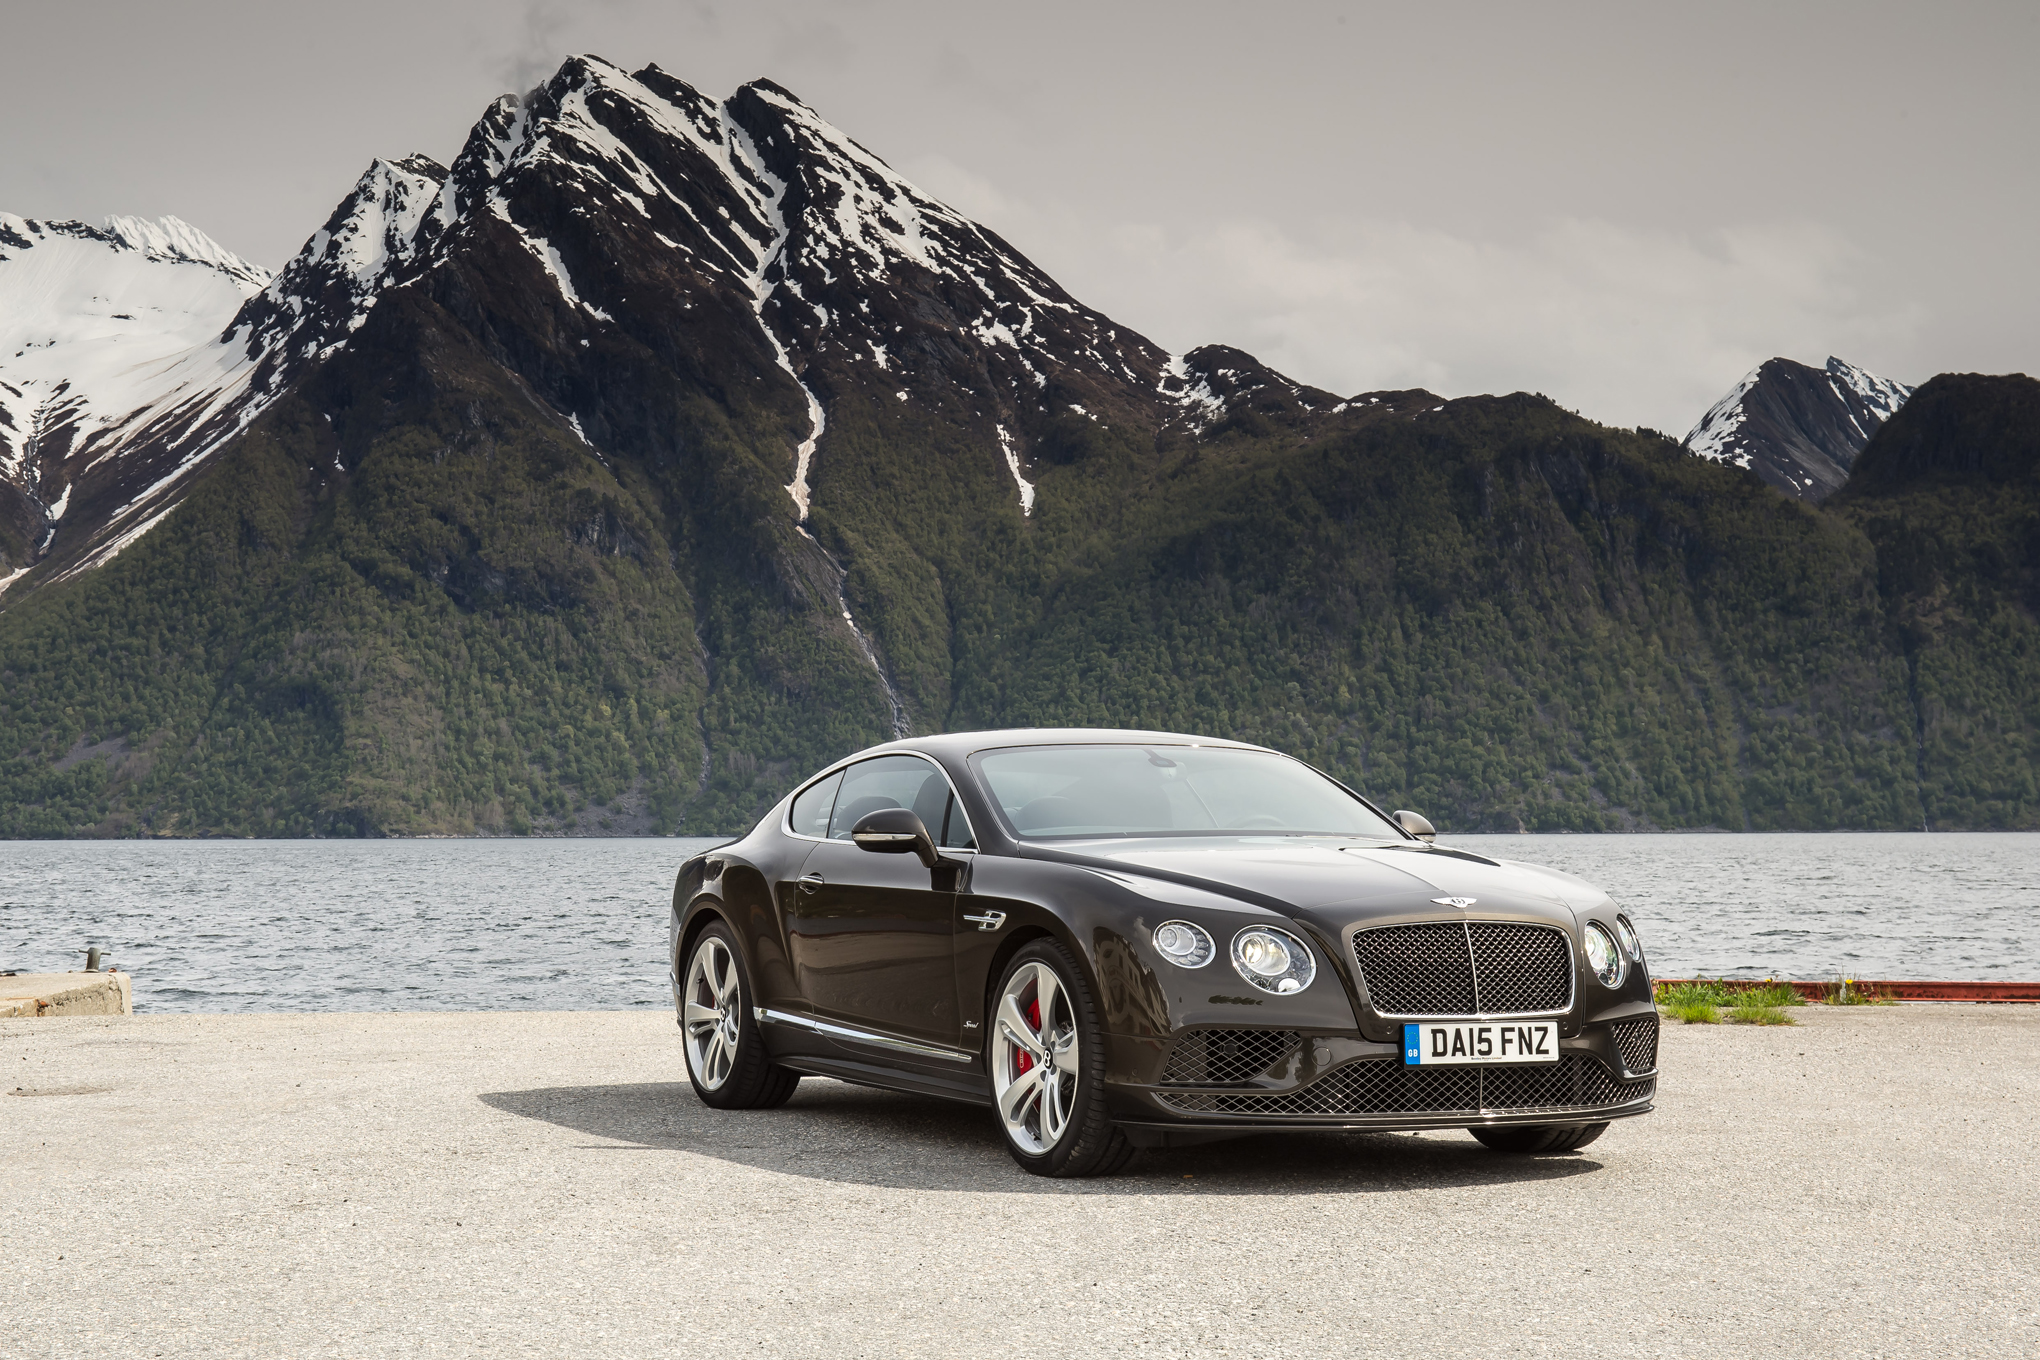 2040x1360 - Bentley Continental GT Wallpapers 15